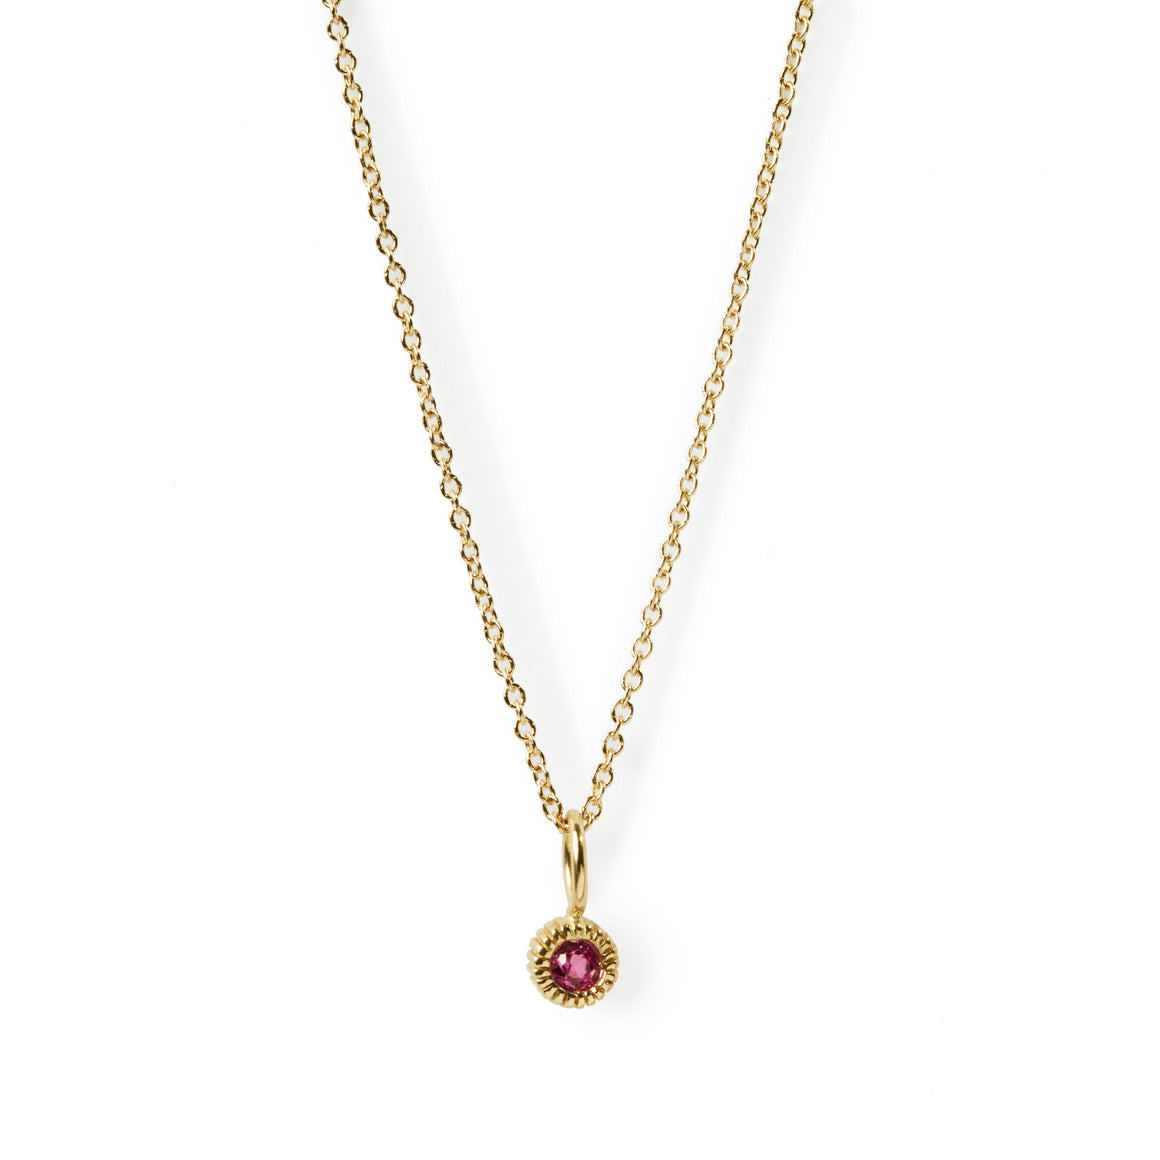 Youth Pink Tourmaline Necklace